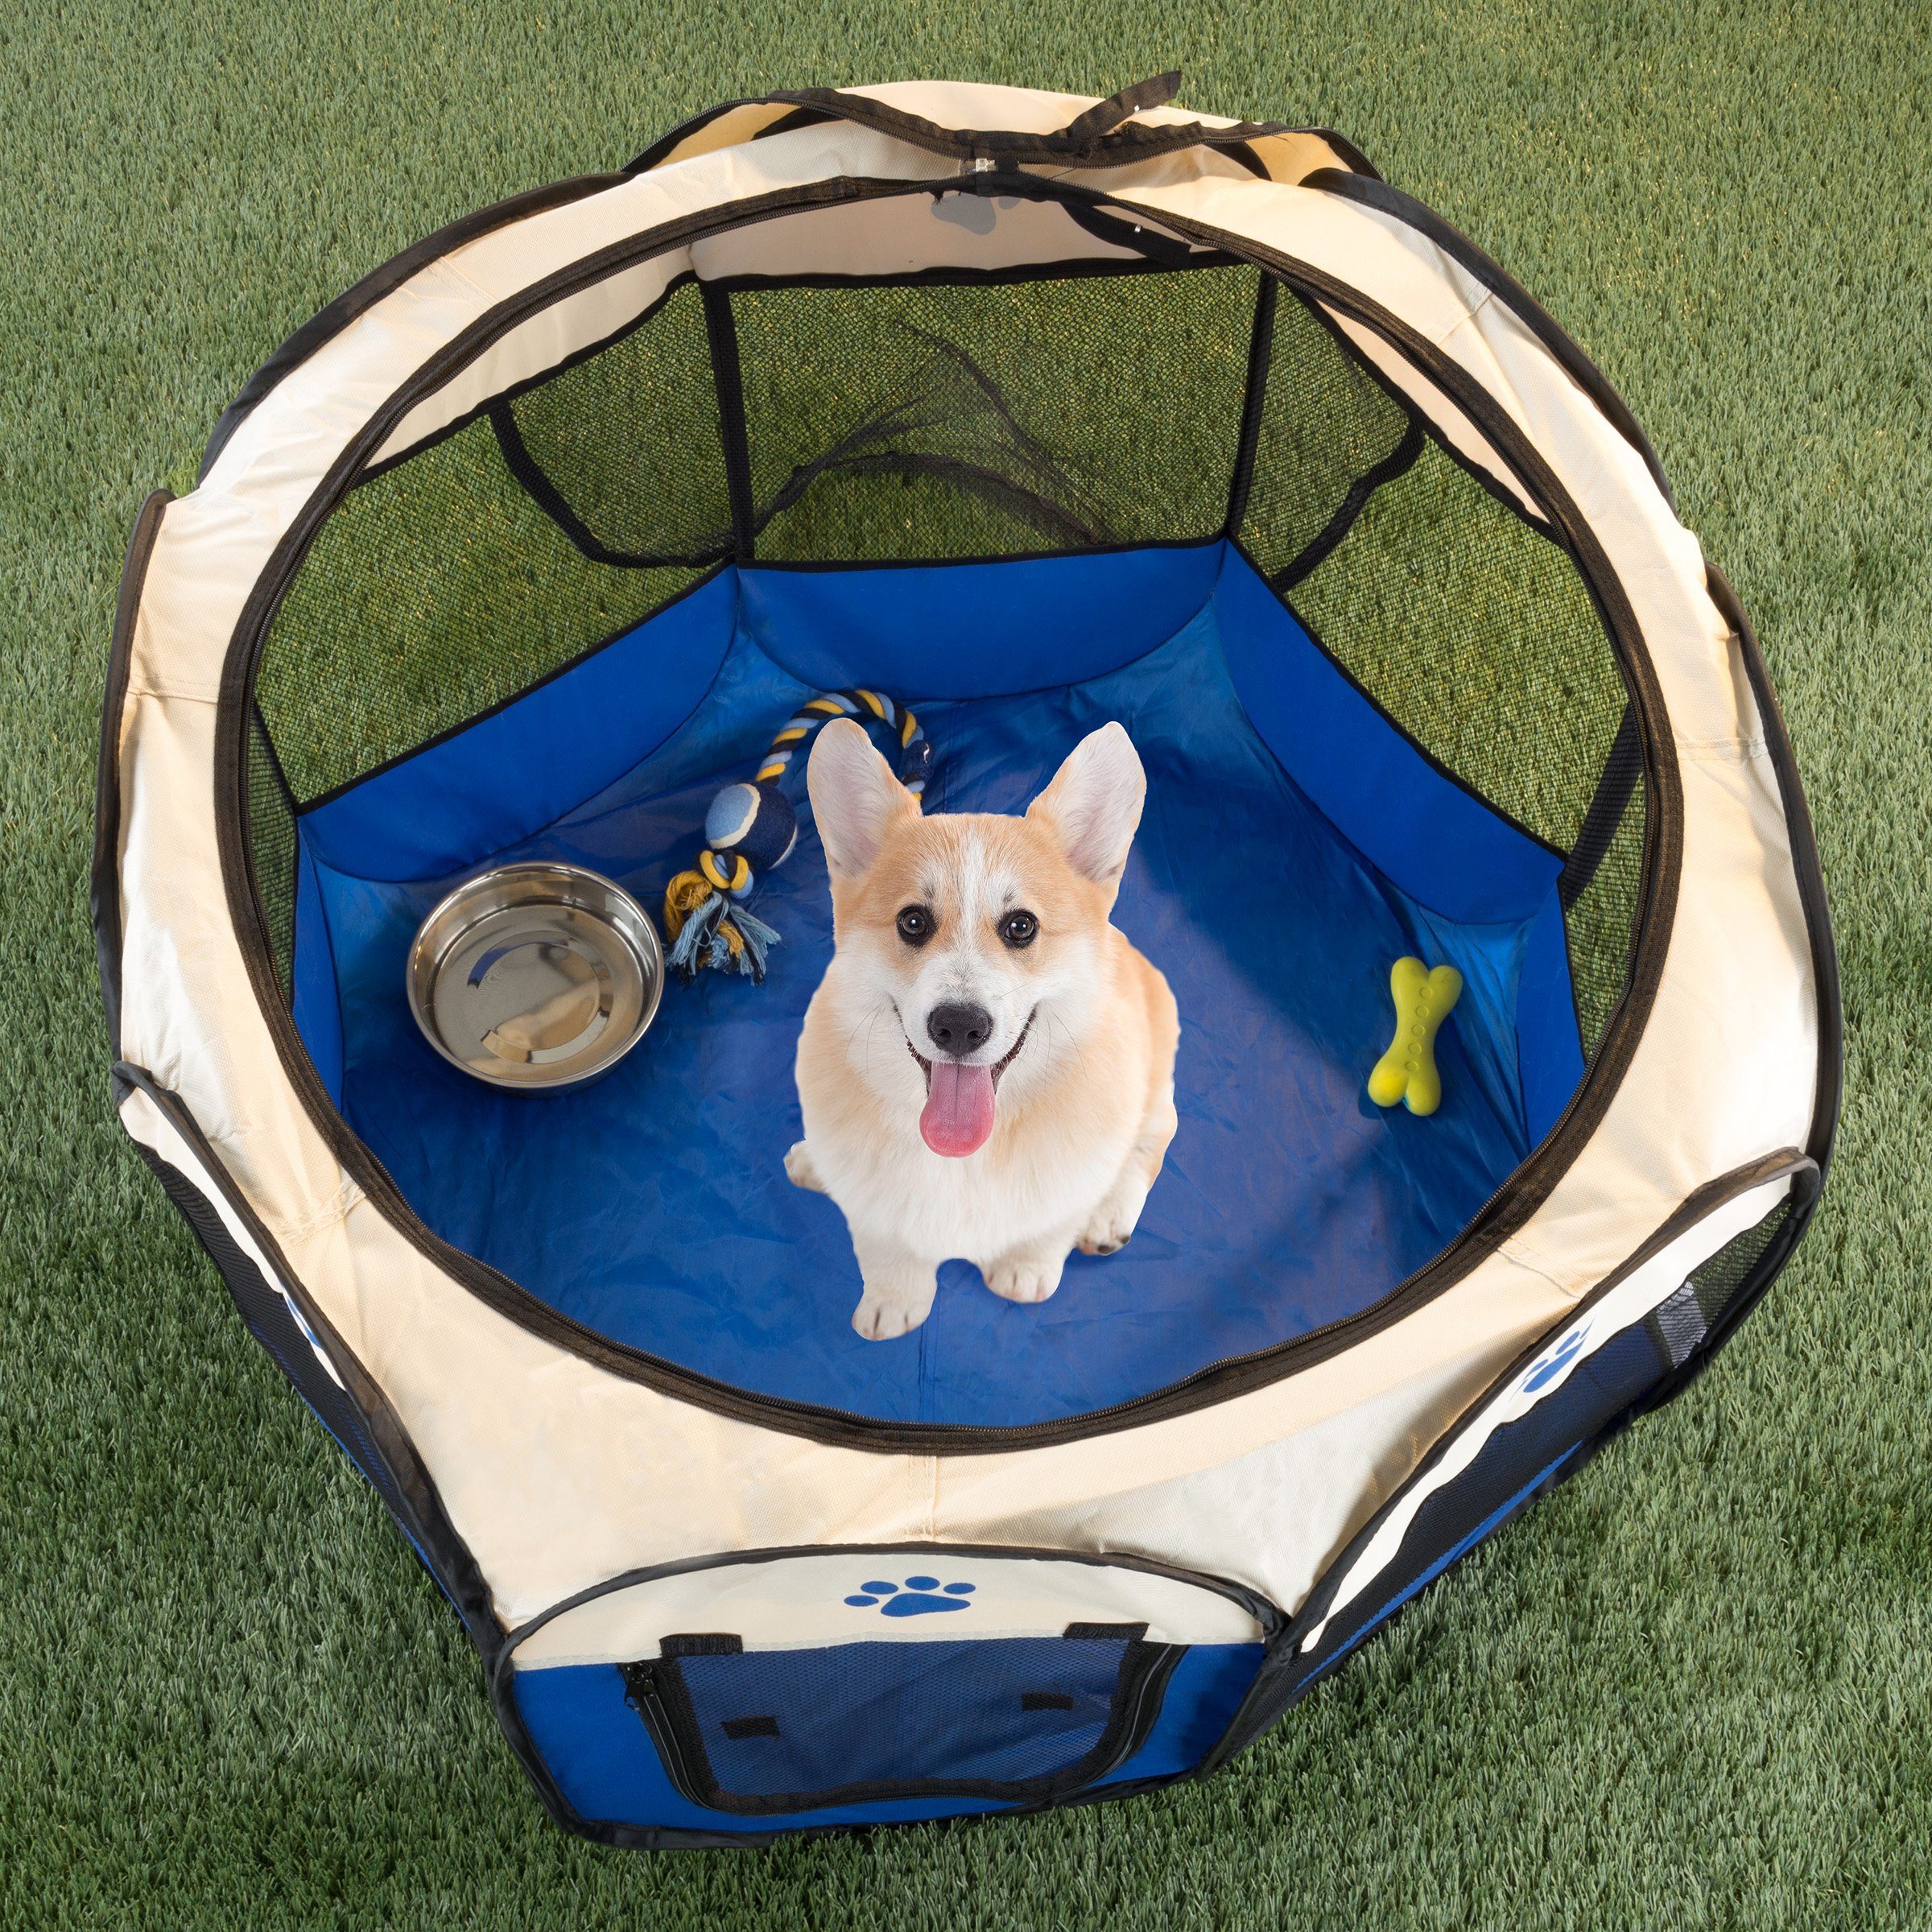 """PETMAKER Pop-up Pet Playpen with Carrying Case for Indoor/Outdoor Use 31.5"""" x 22""""-Portable for Travel-Great for Dogs, Cats, Small Animals (Blue)"""